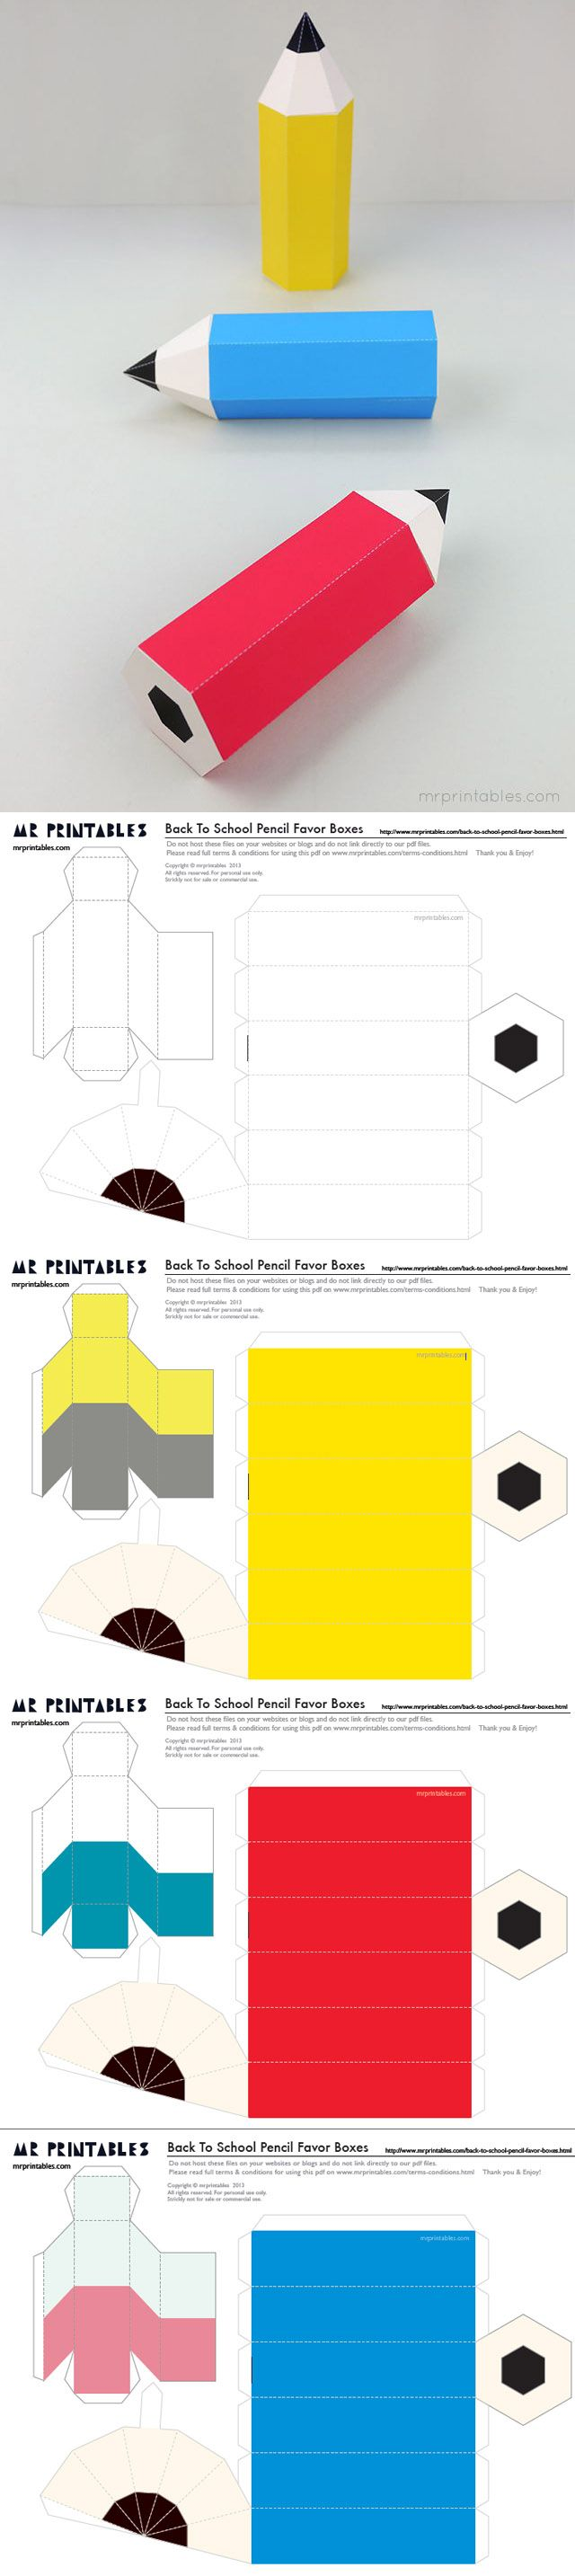 Pencil Box. Templates                                                                               More